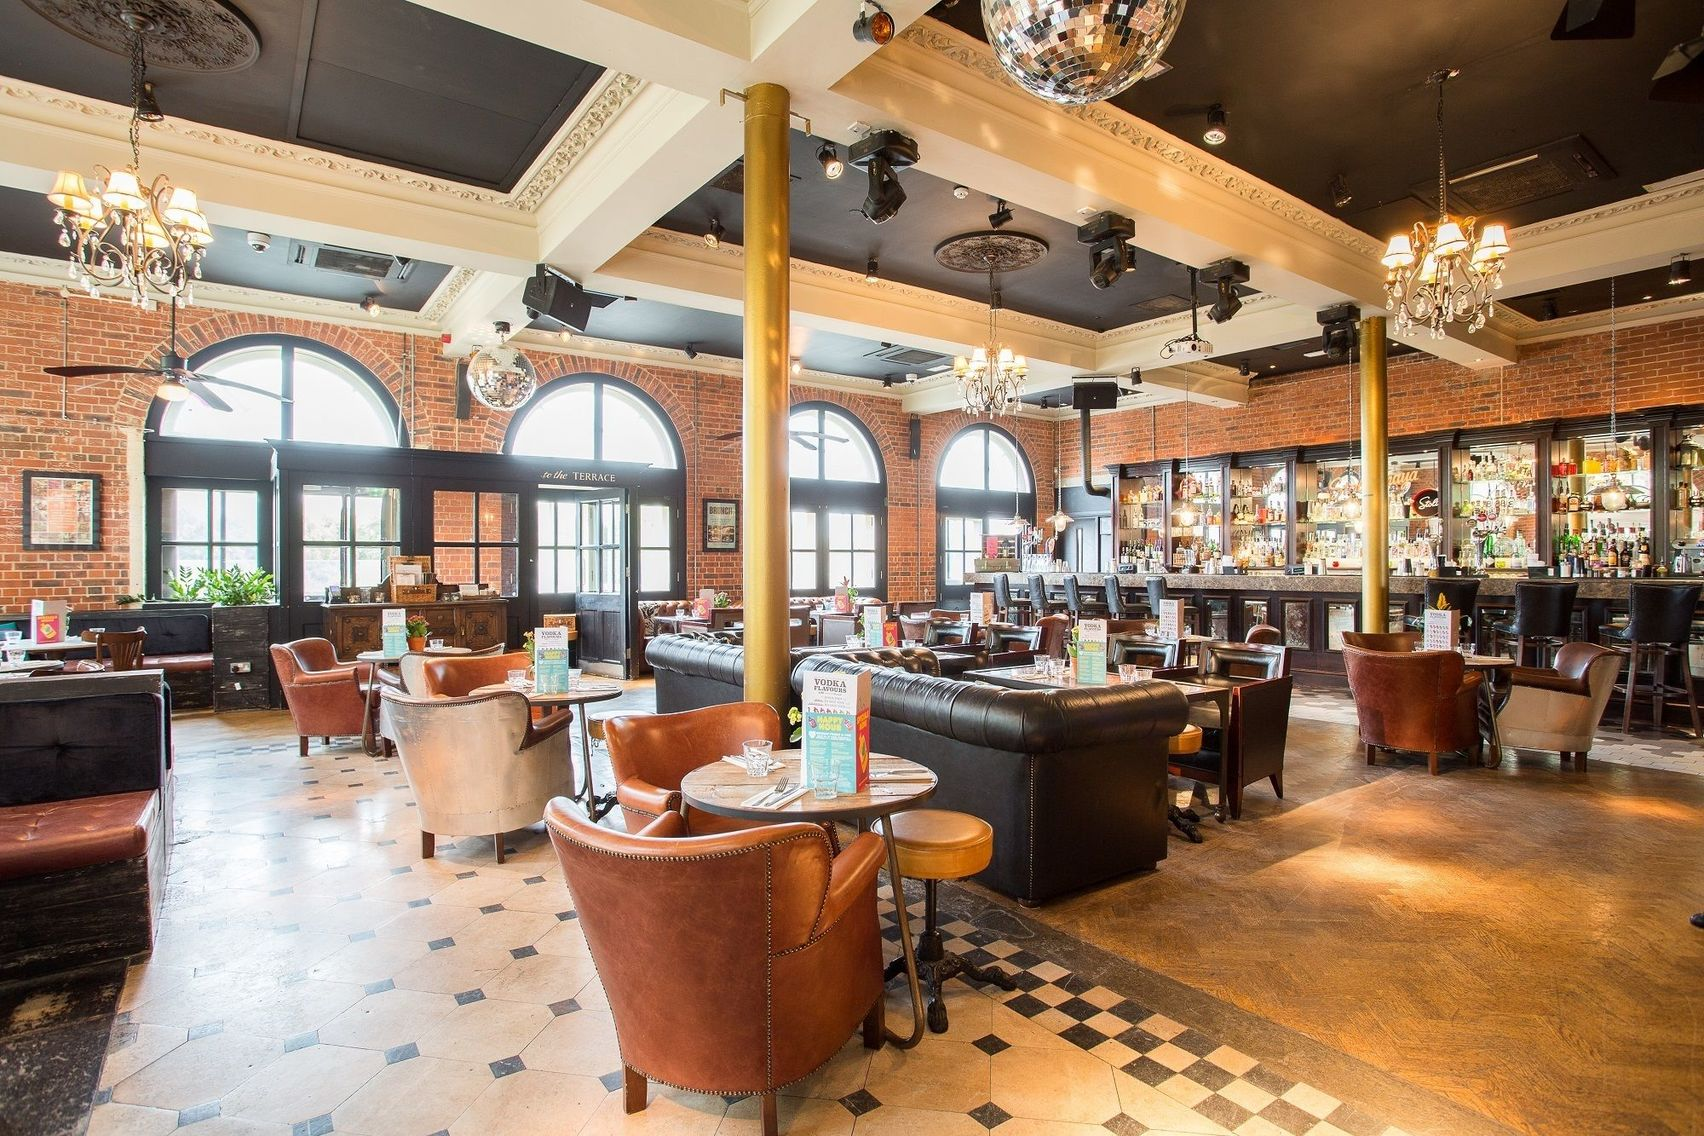 Book the terrace bar revolution richmond london headbox for The terrace book